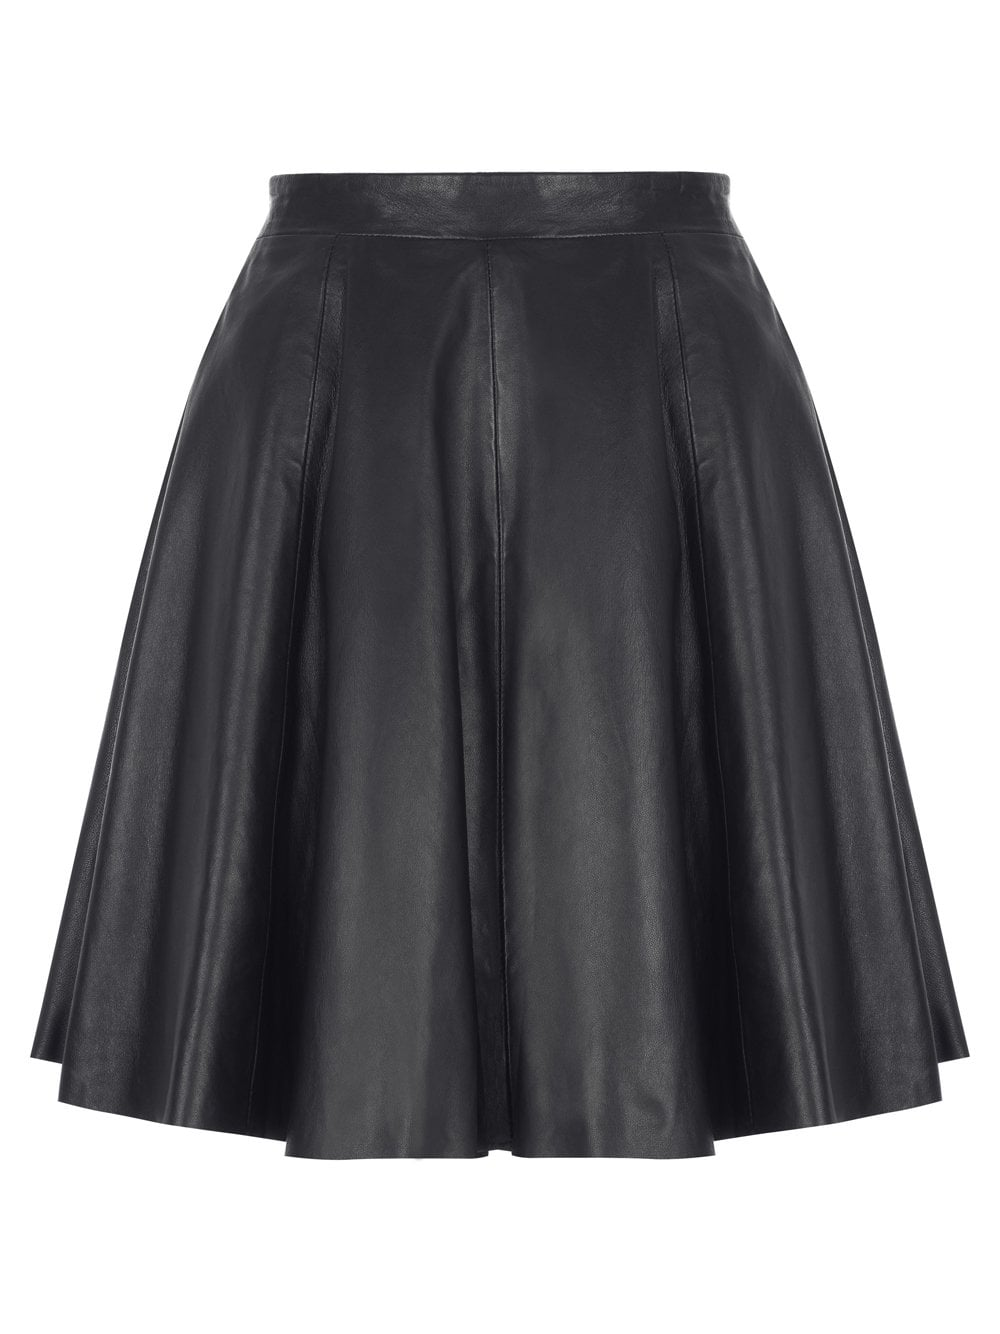 presenting outlet on sale wholesale price Pipri Leather Skater Skirt in Black